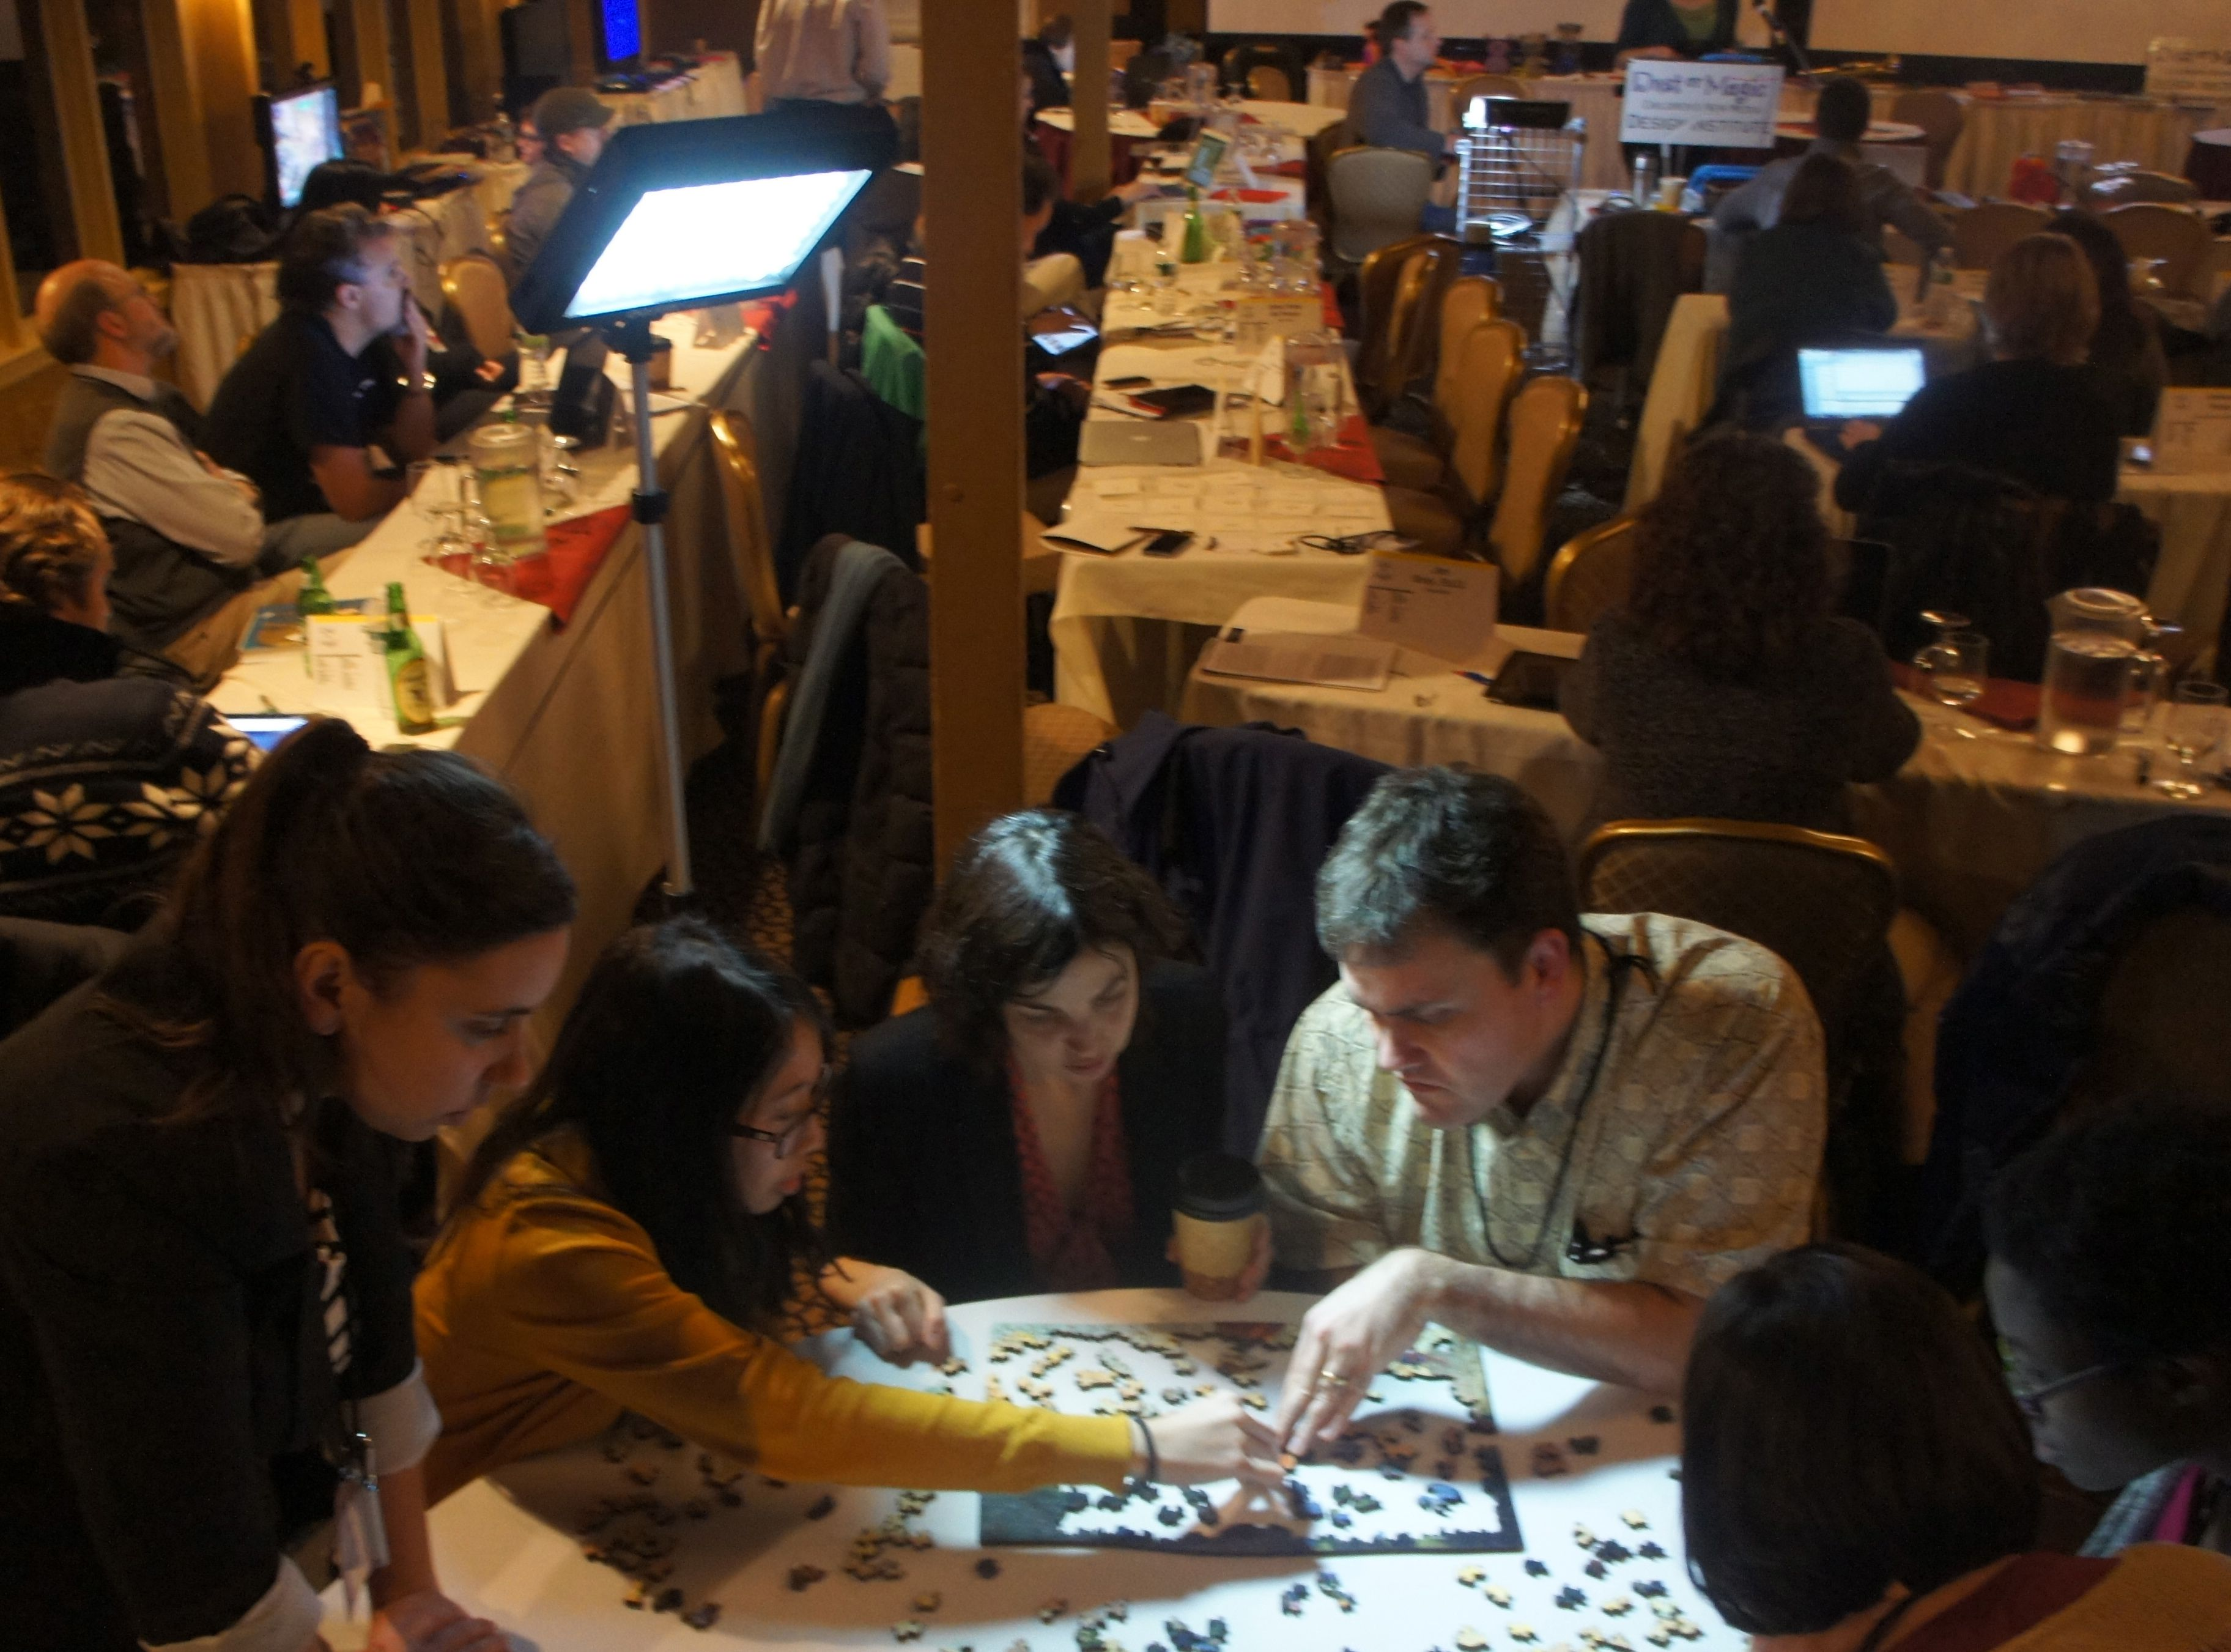 Jesse Schell leads a team on a very low tech jigsaw puzzle, as he listens to a demo in progress on Monday night.